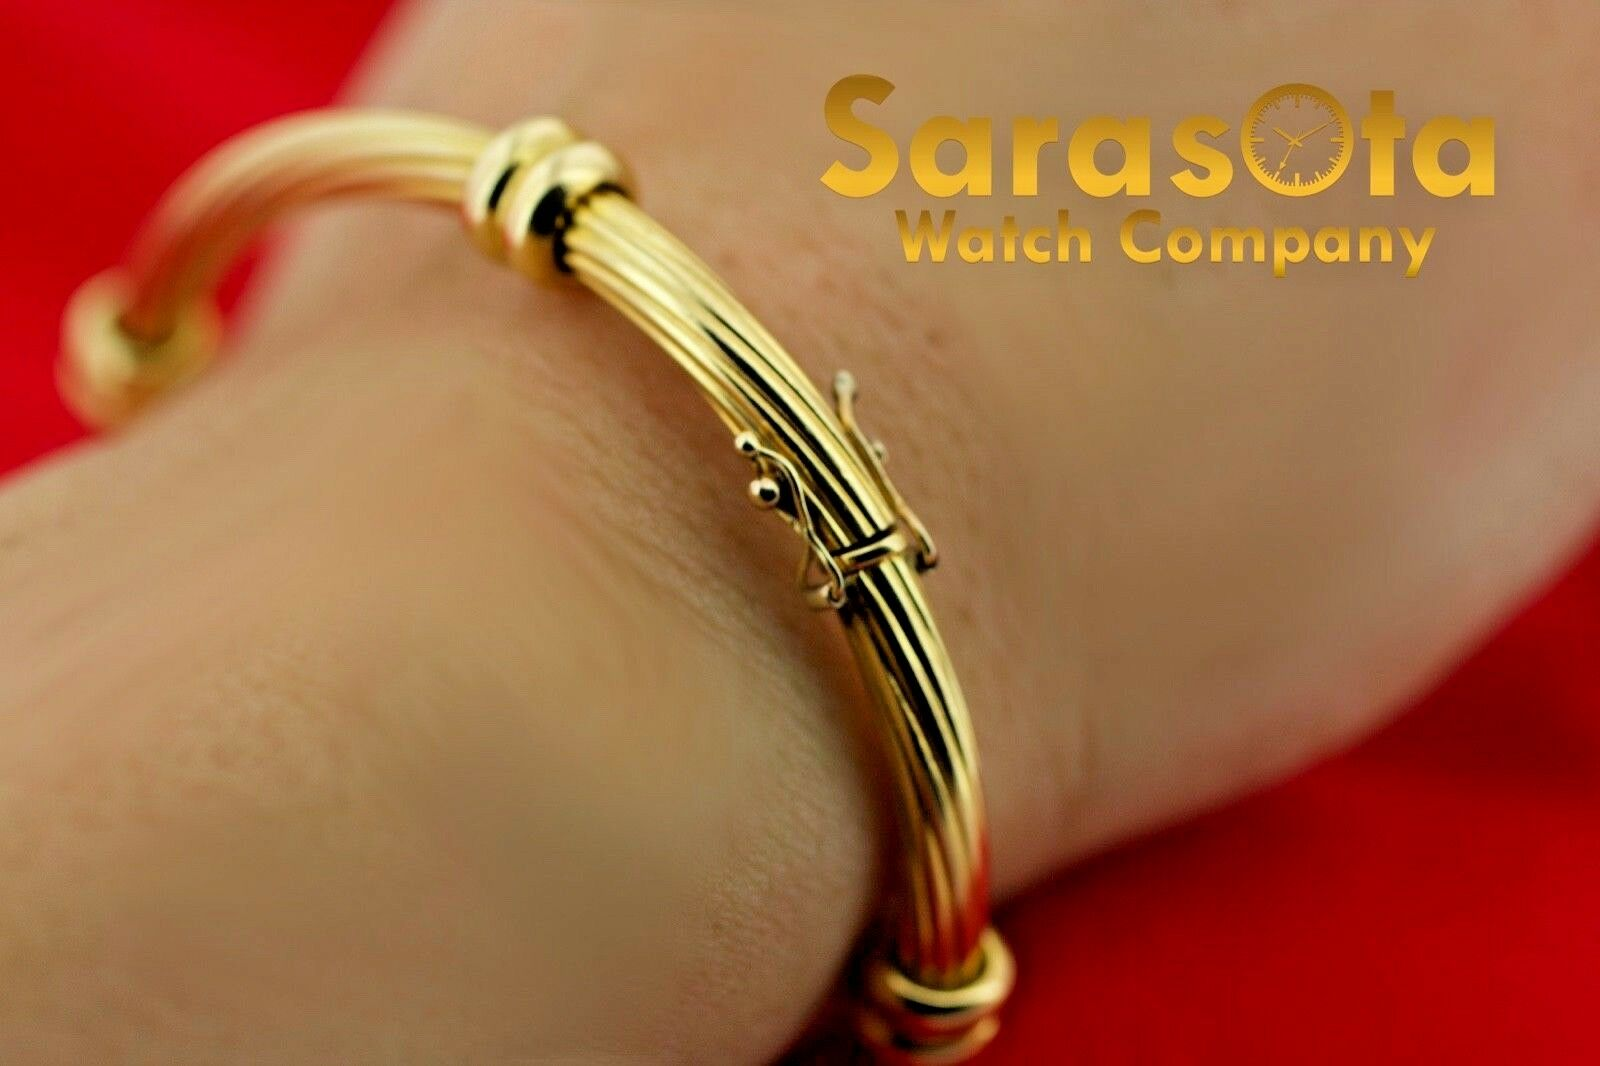 18k Yellow Gold Solid 4mm Polished Cable 4 Station Bangle Womens Bracelet 65 123576100641 8